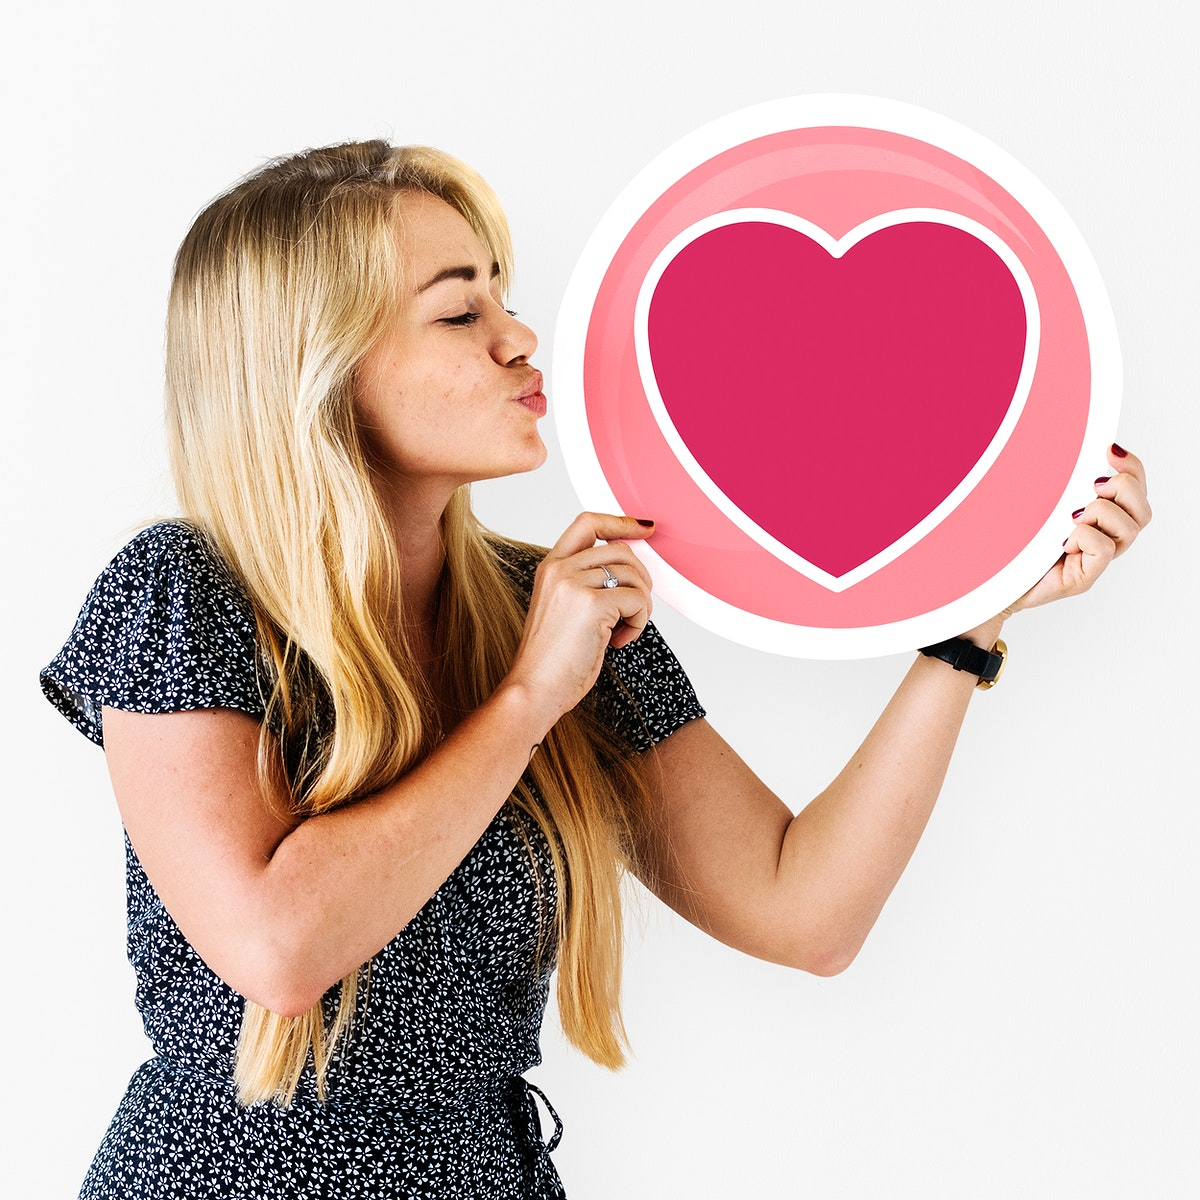 Blond woman holding heart icon